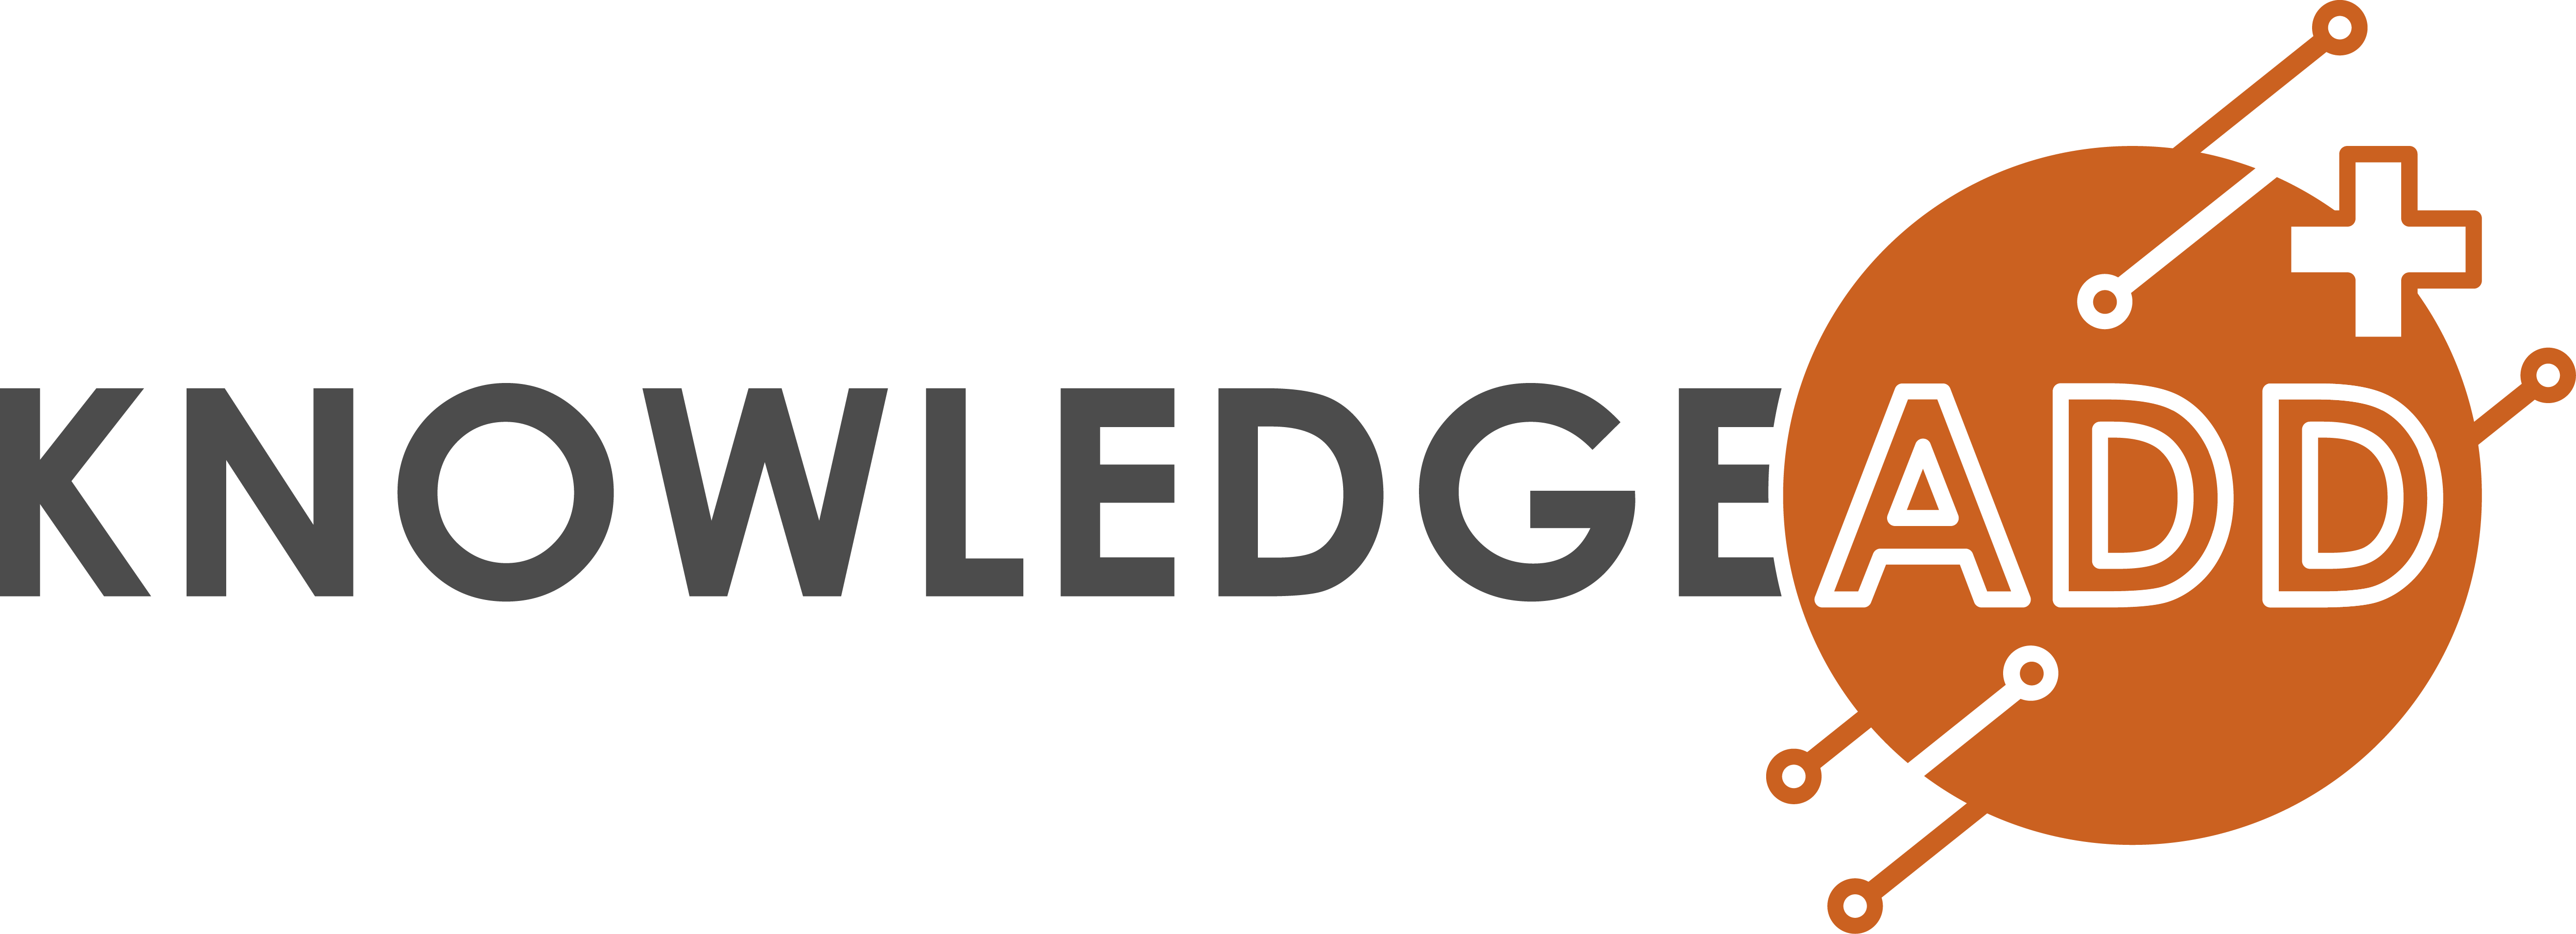 KnowledgeAdd Ltd